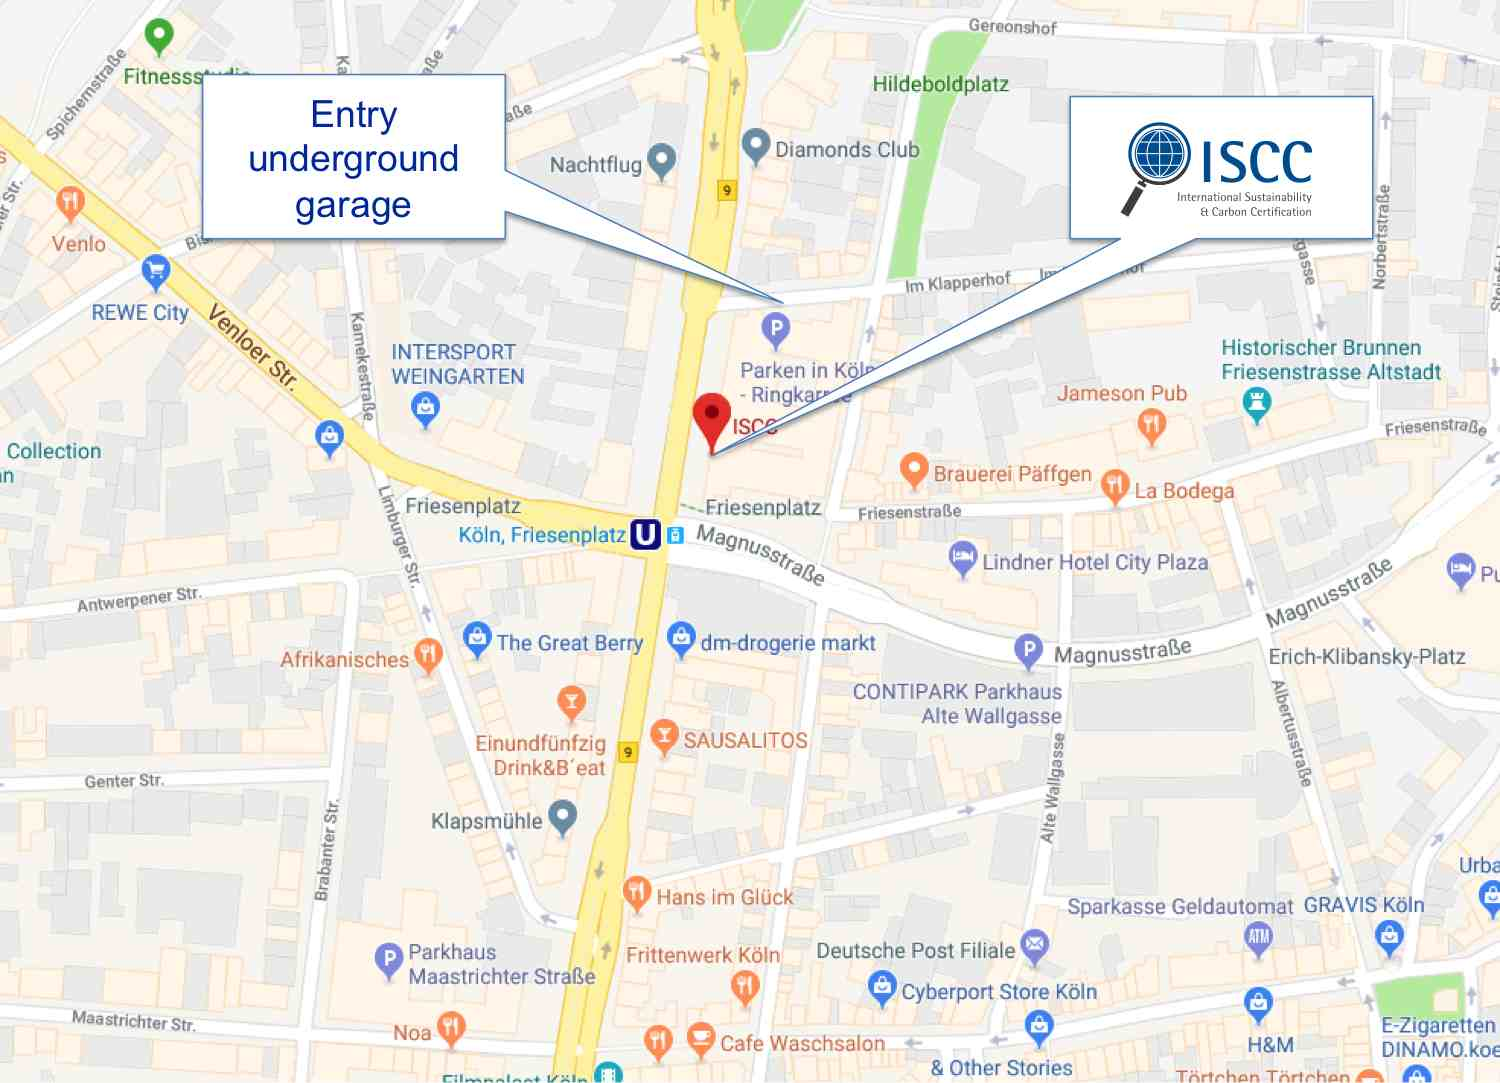 Contact › ISCC System